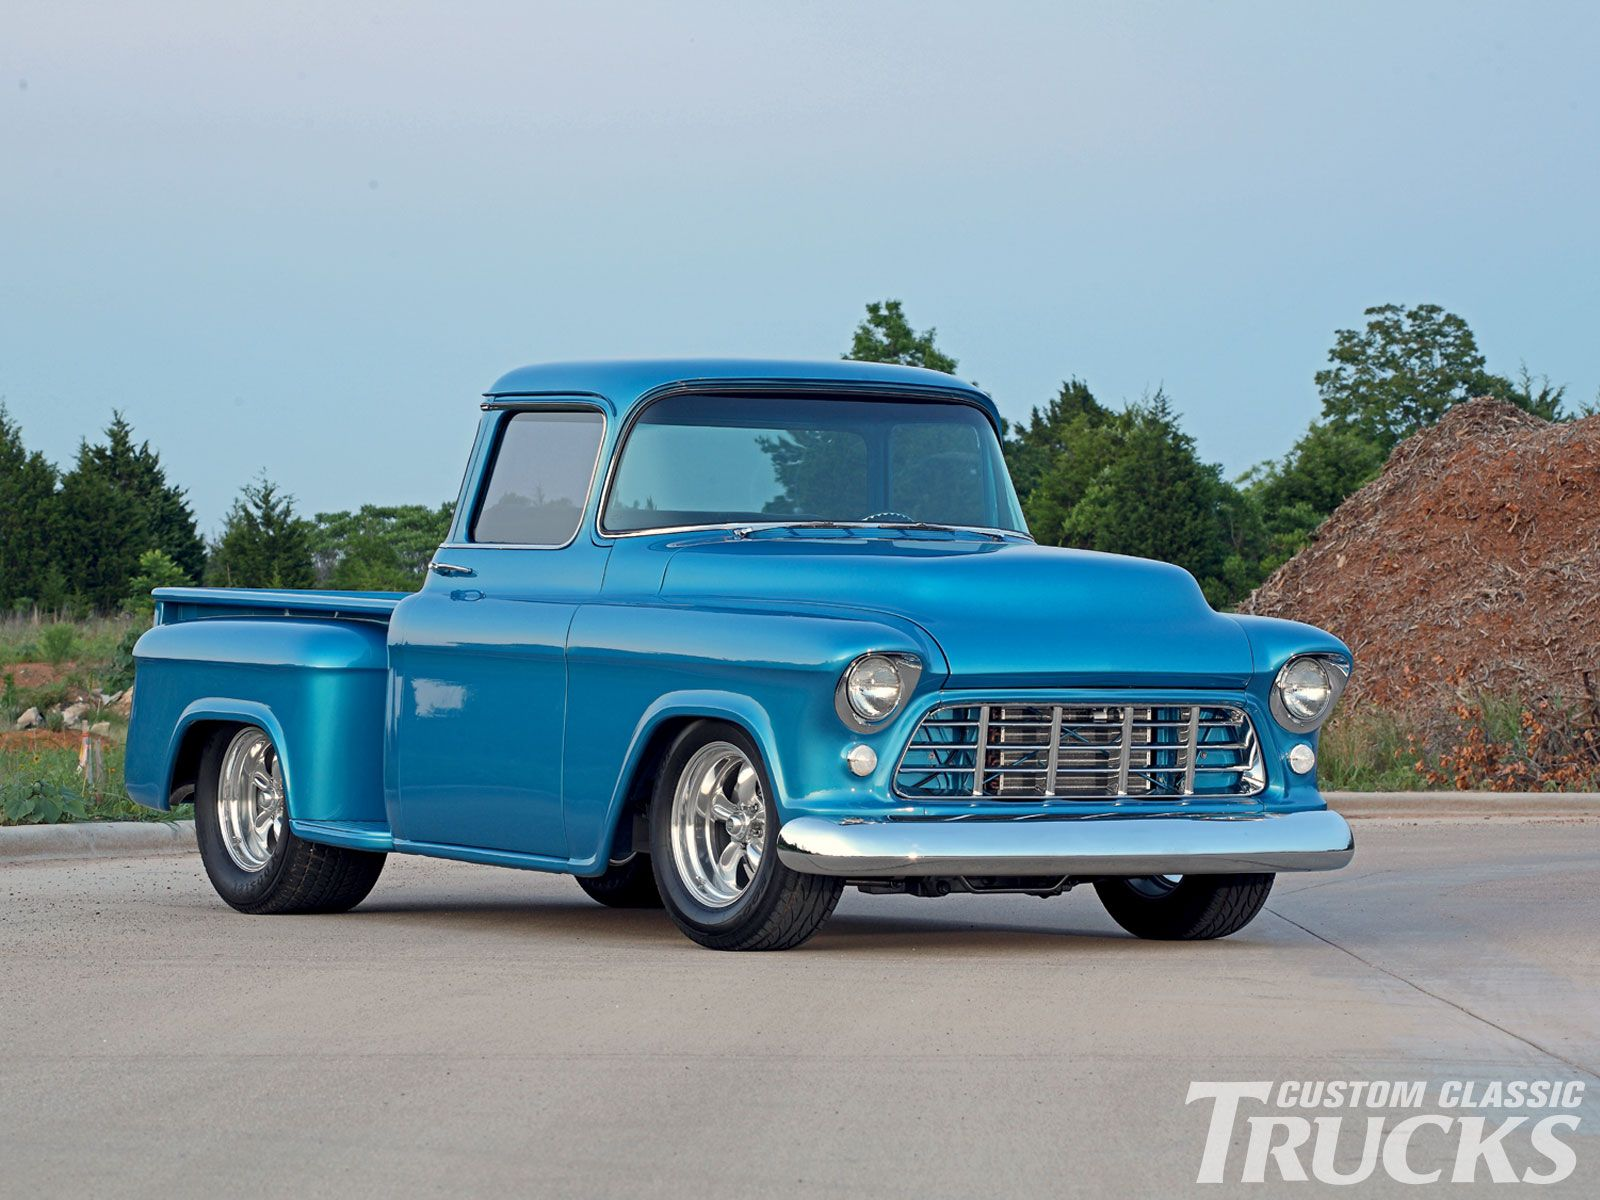 1966 Chevy C10 Stepside 355 ci